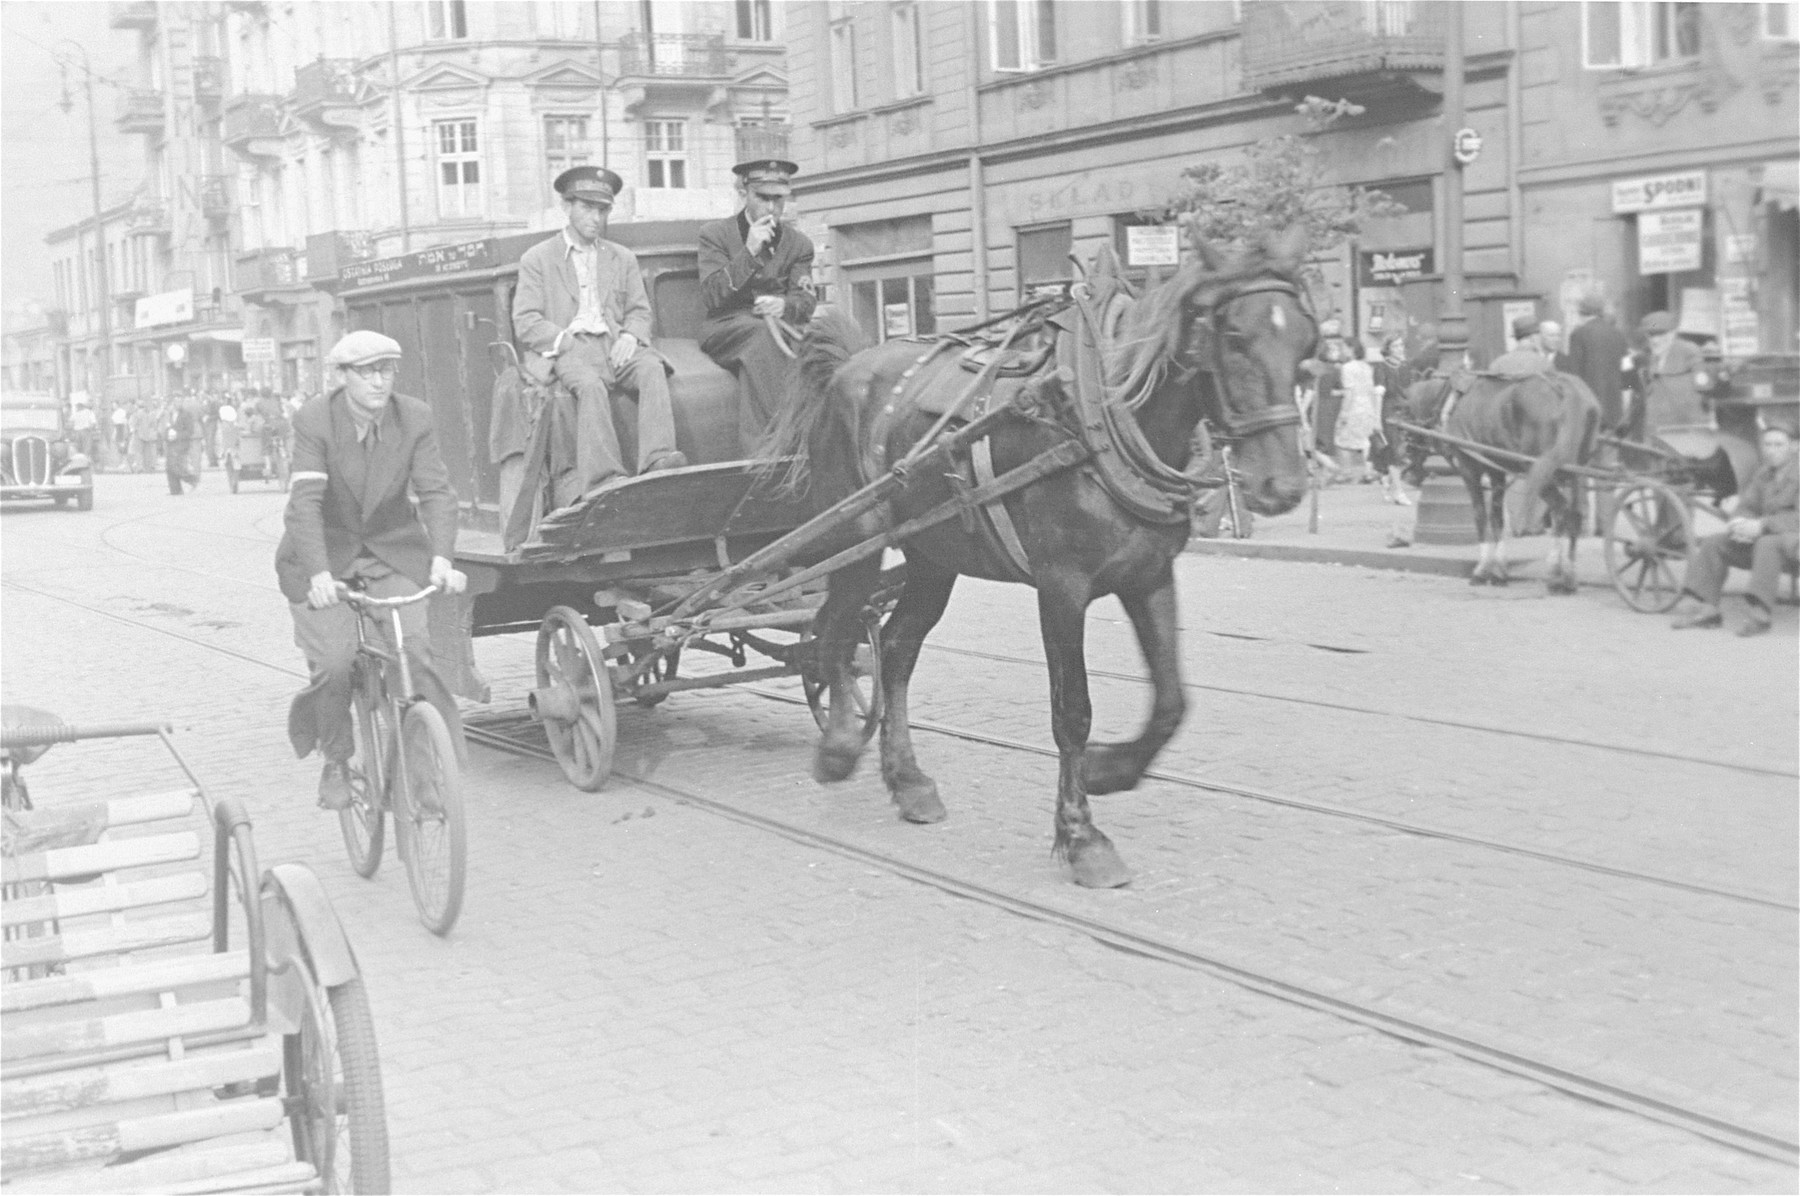 Undertakers drive a horse-drawn funeral wagon through the streets of the Warsaw ghetto.